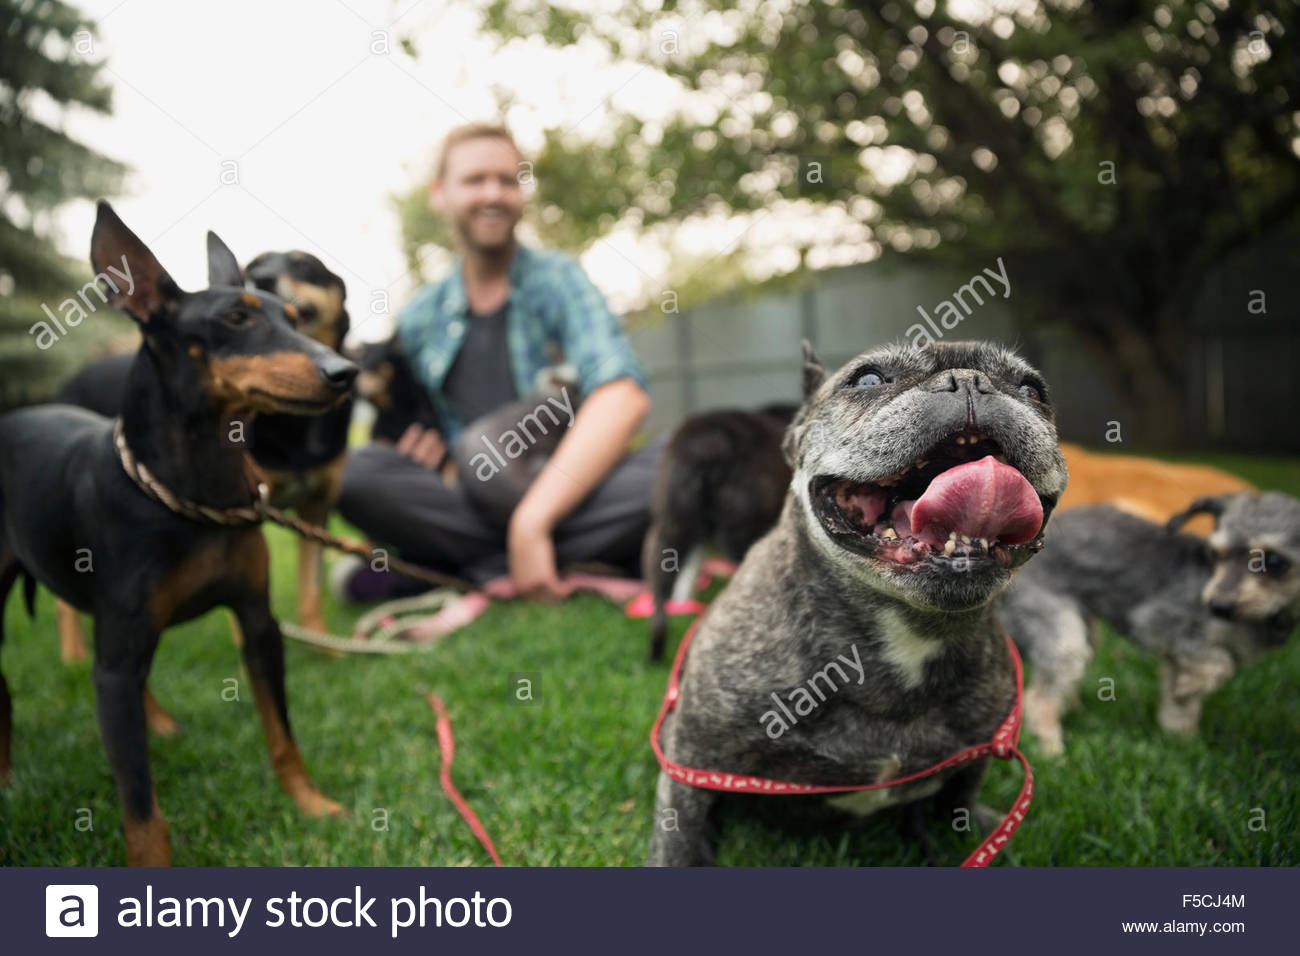 Man with dogs on leashes sitting in grass - Stock Image